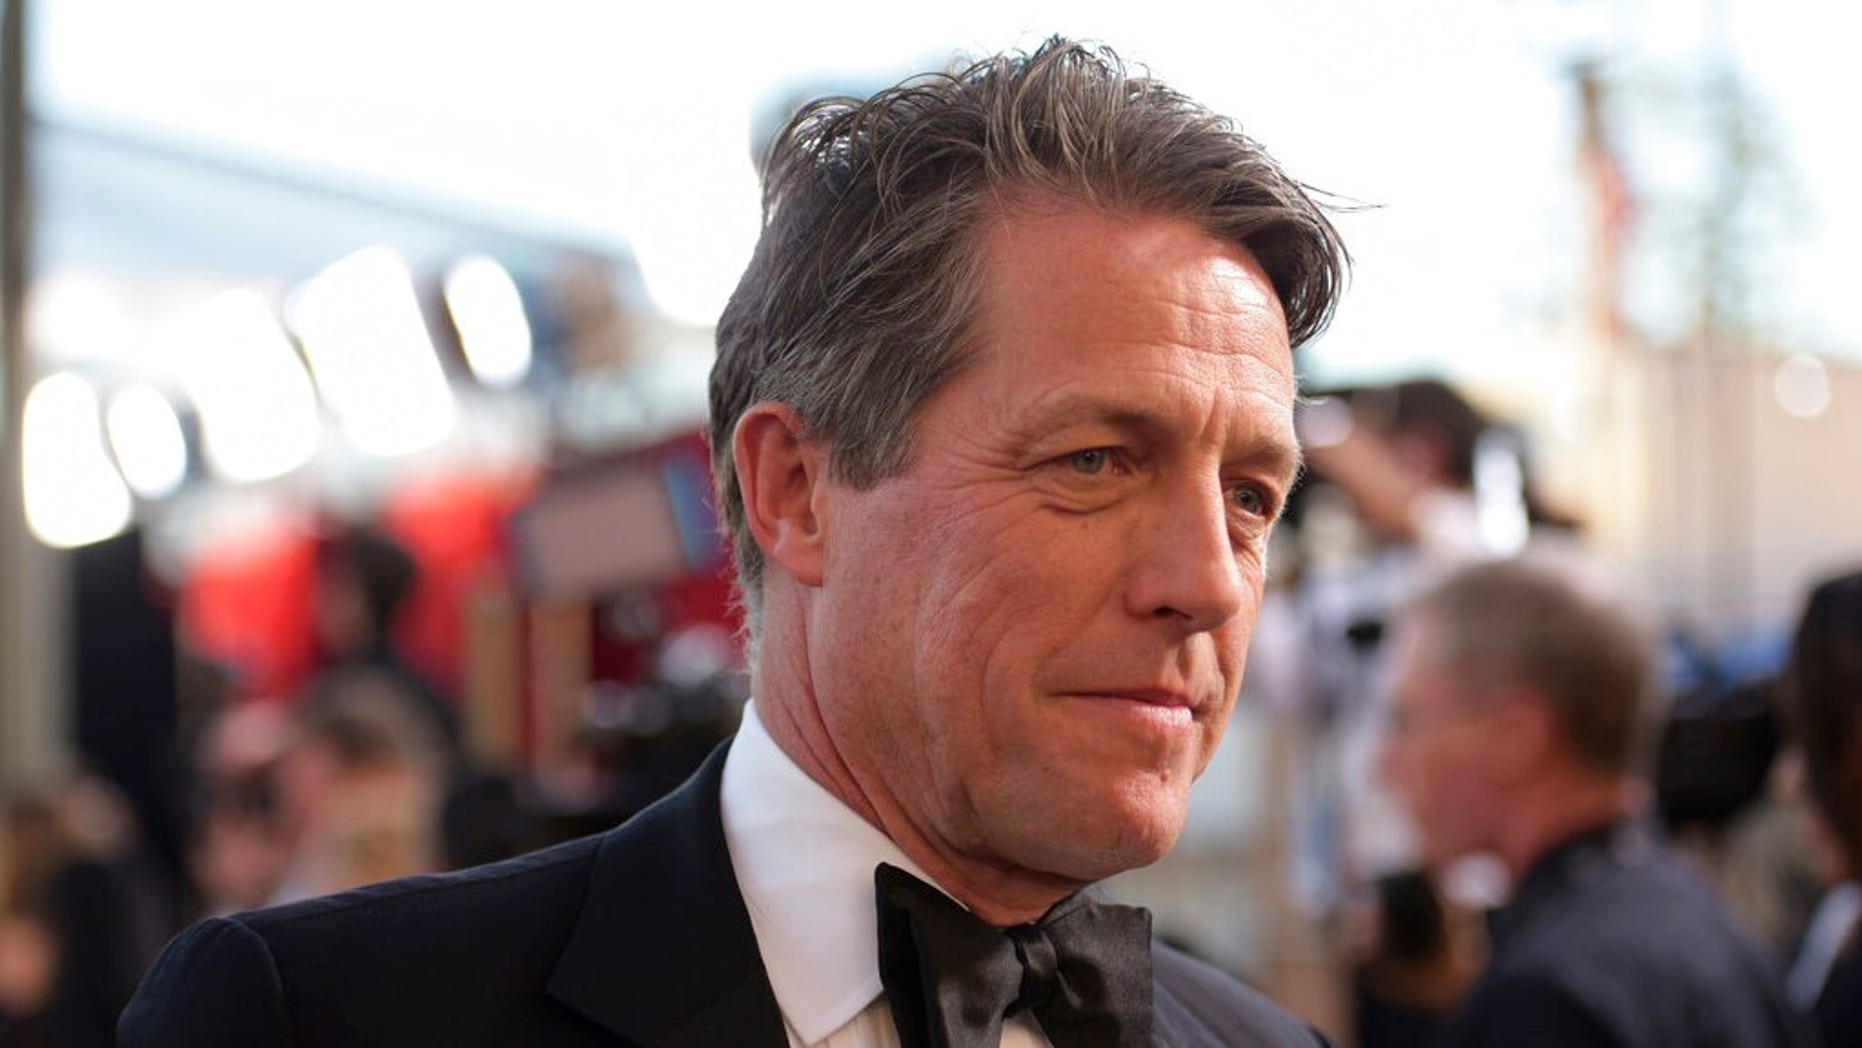 British actor Hugh Grant tweeted to the thief who broke into his car late Sunday.